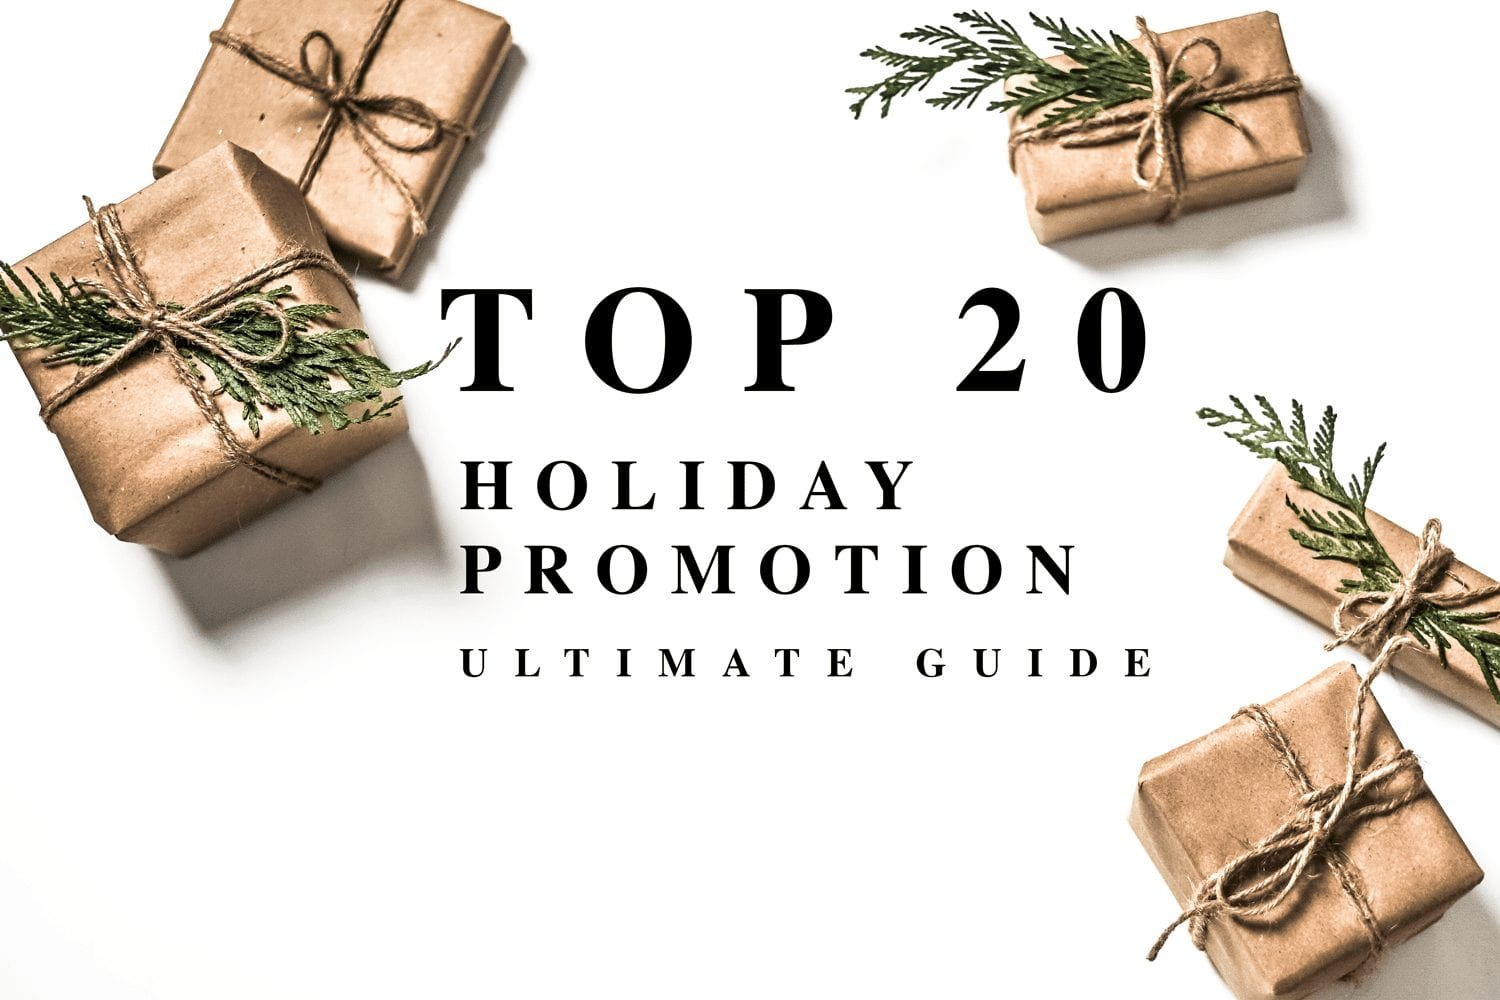 Top20HolidayPromotionUltimateGuide1